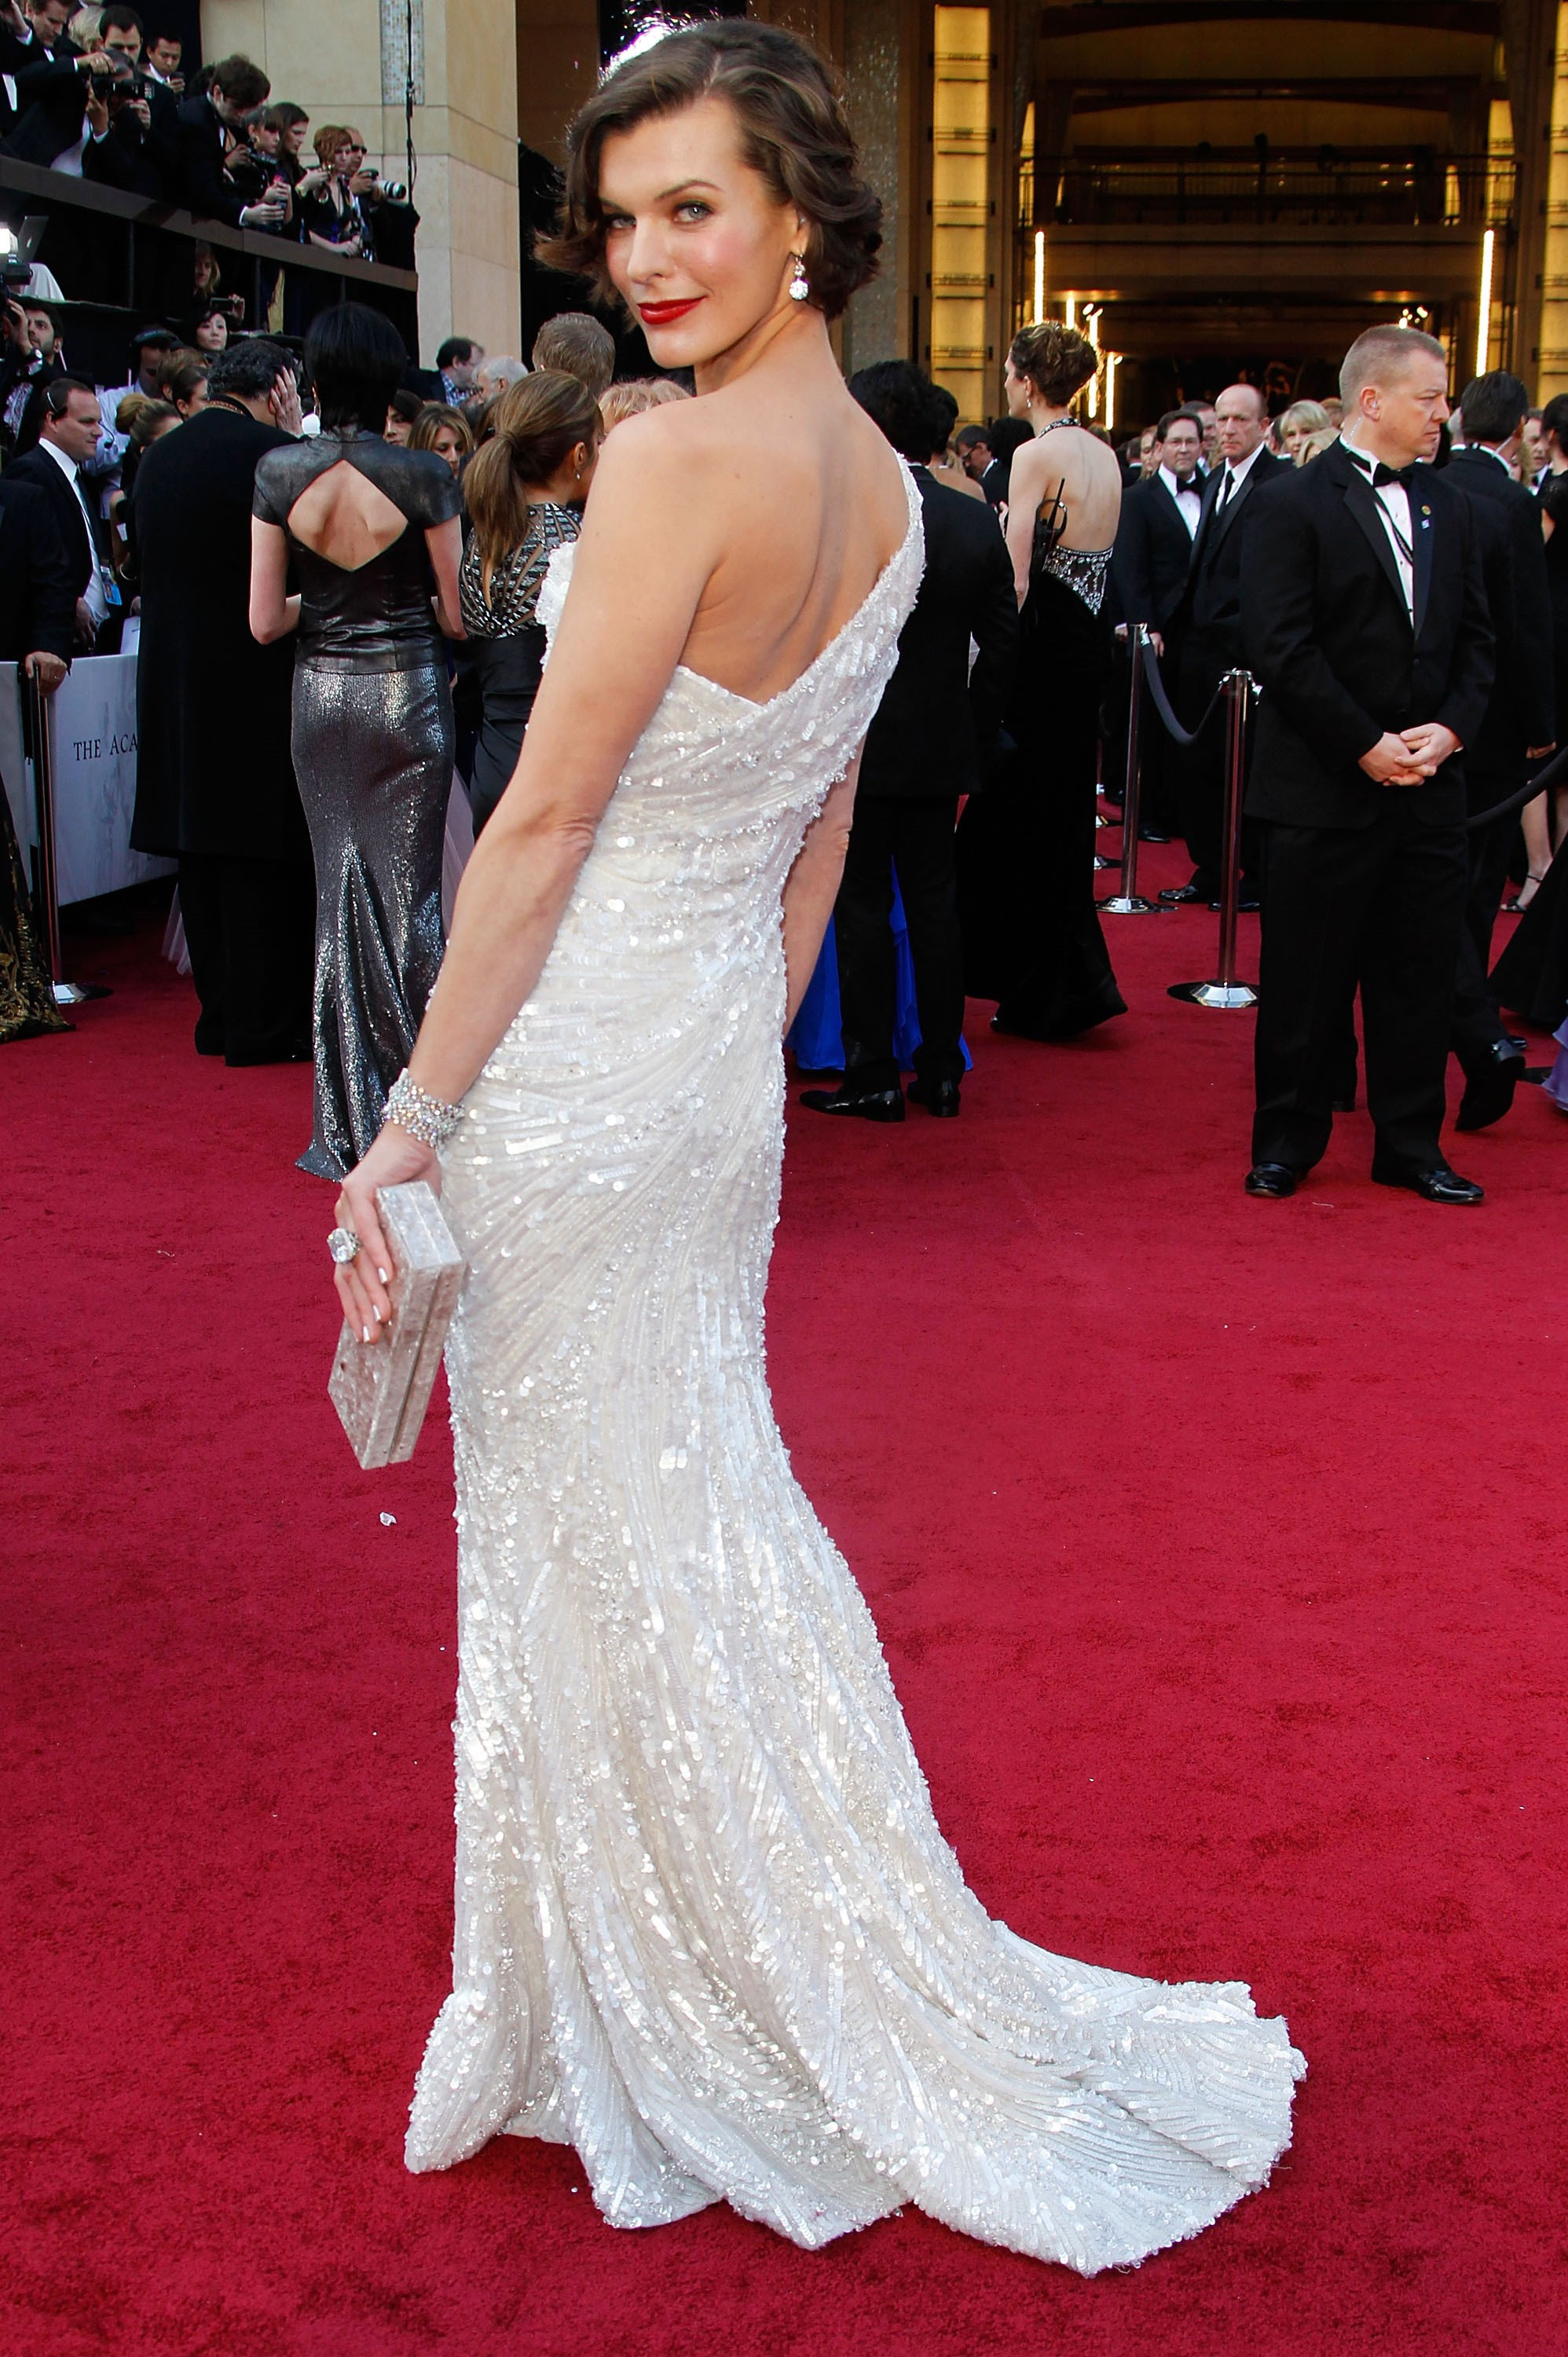 Milla Jovovich at the 84th Academy Awards, 2012, wearing Elie Saab Couture and Jacob & Co. jewellery.